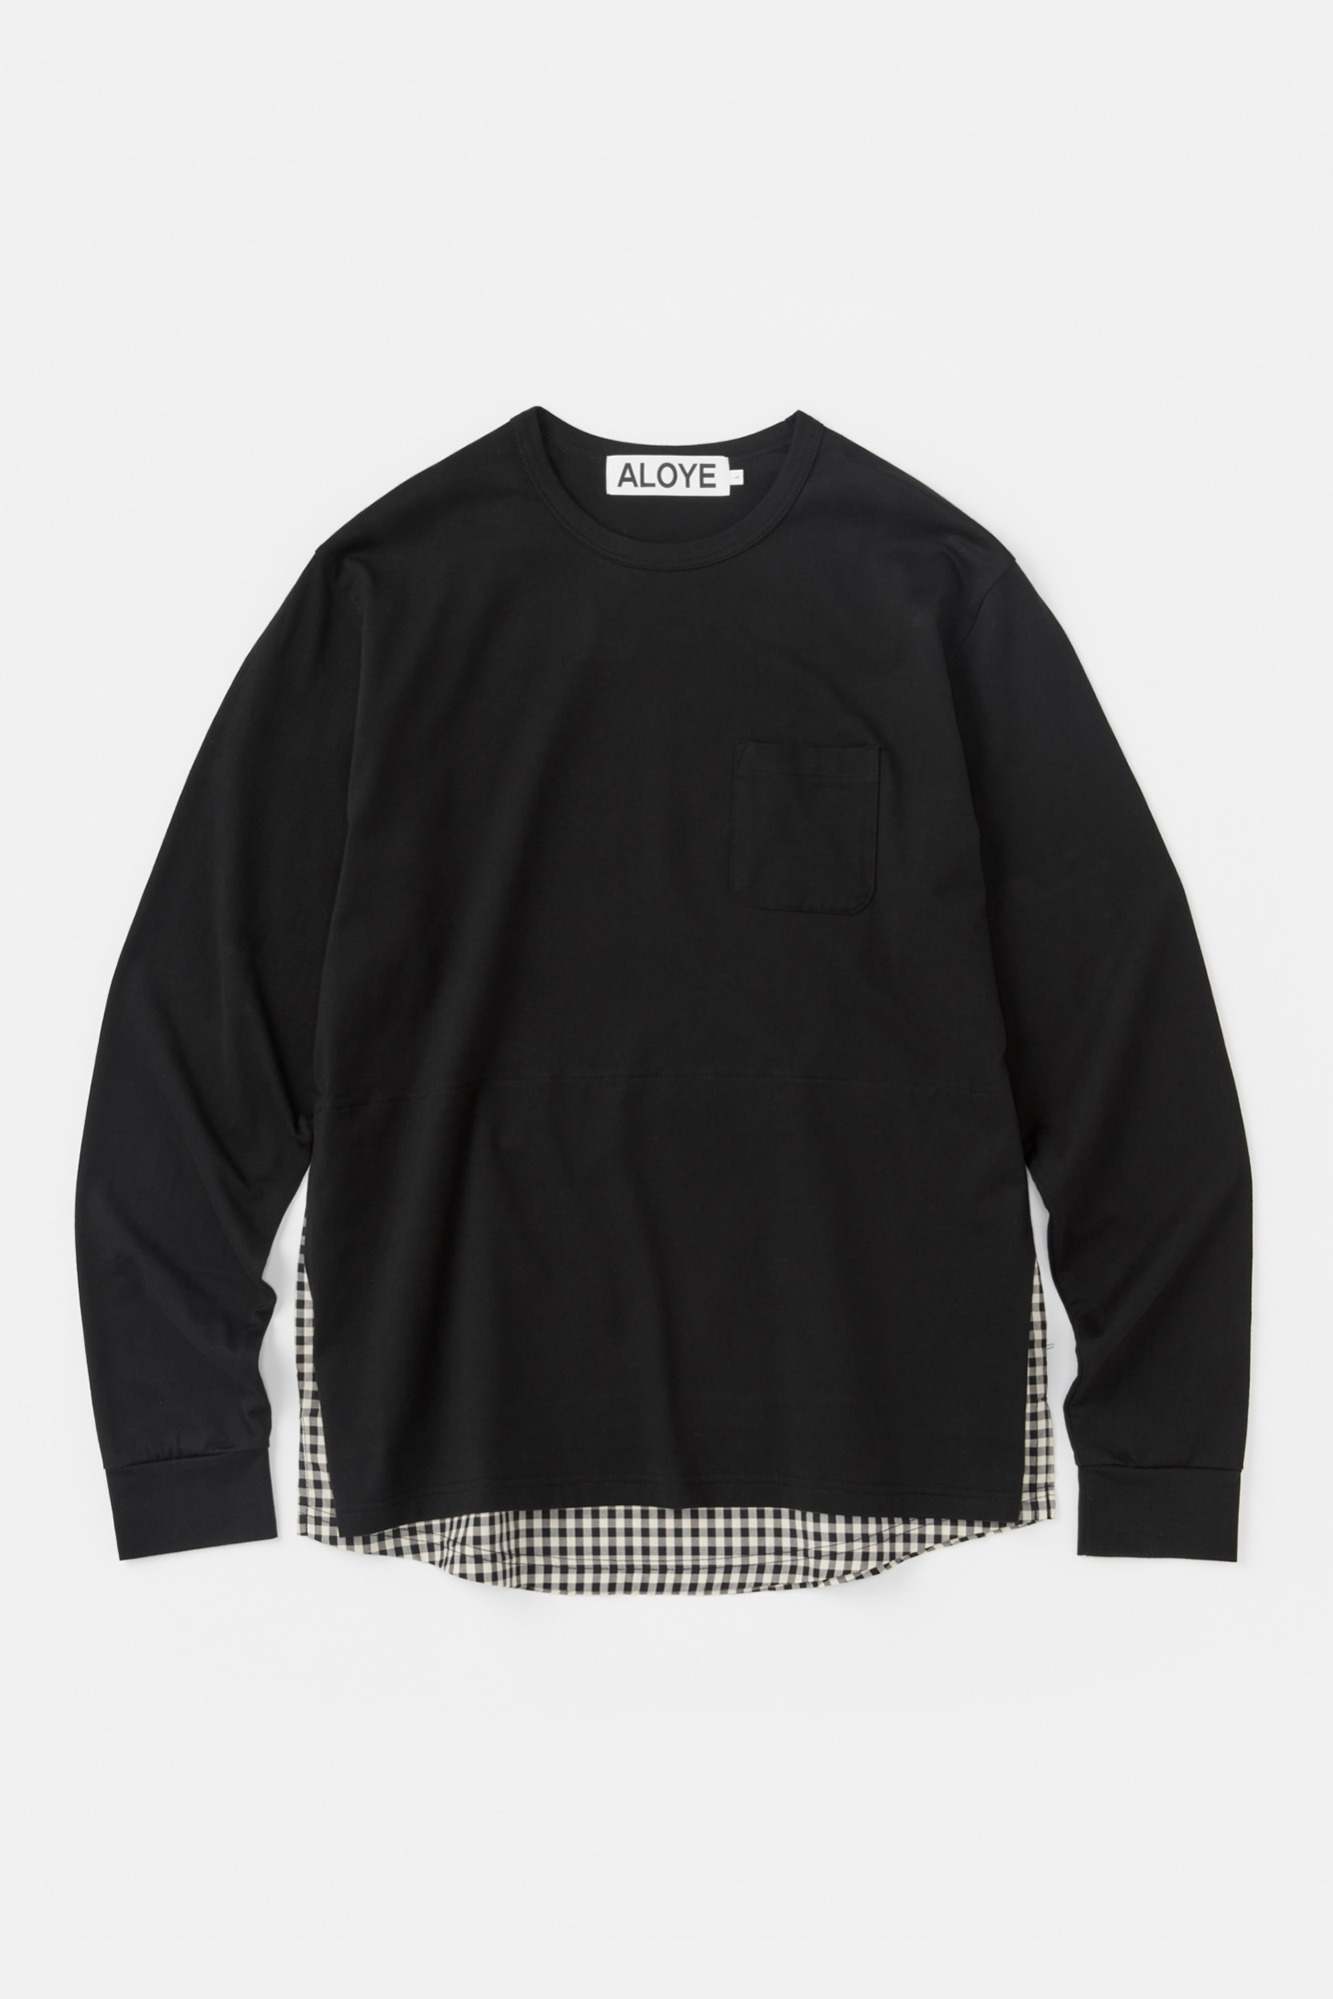 "ALOYE Shirt Fabrics Long Sleeve Layerd T-shirt ""Black"""